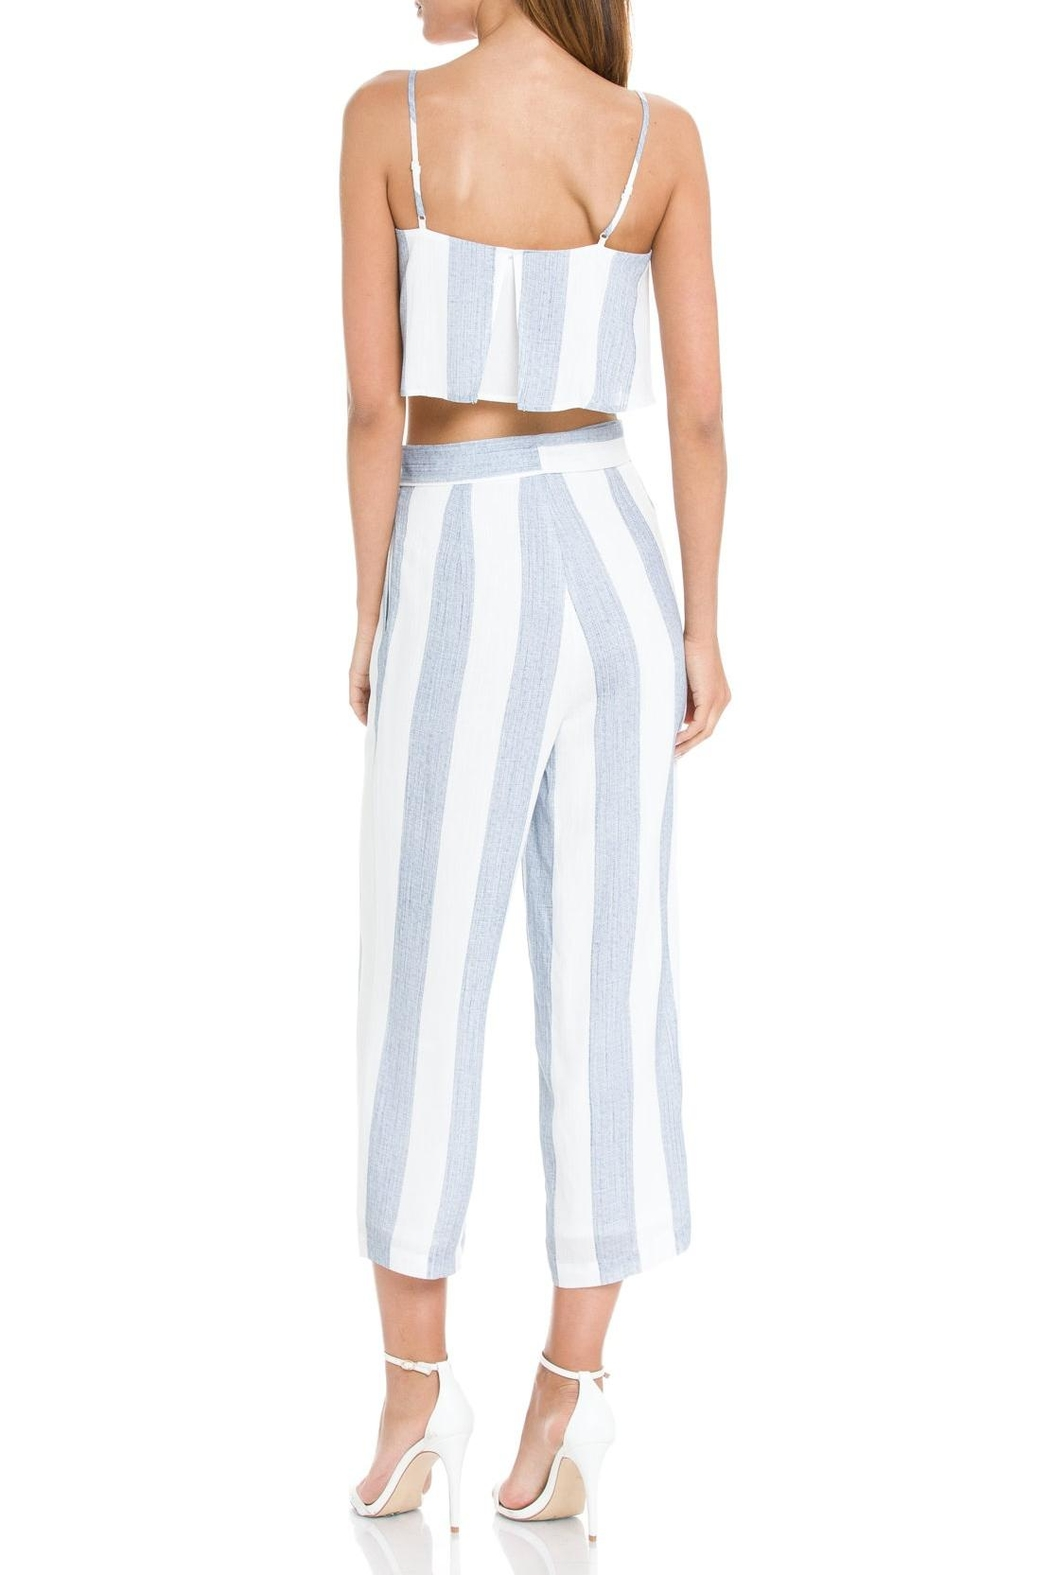 After Market Blue Striped Two-Piece-Set - Front Full Image